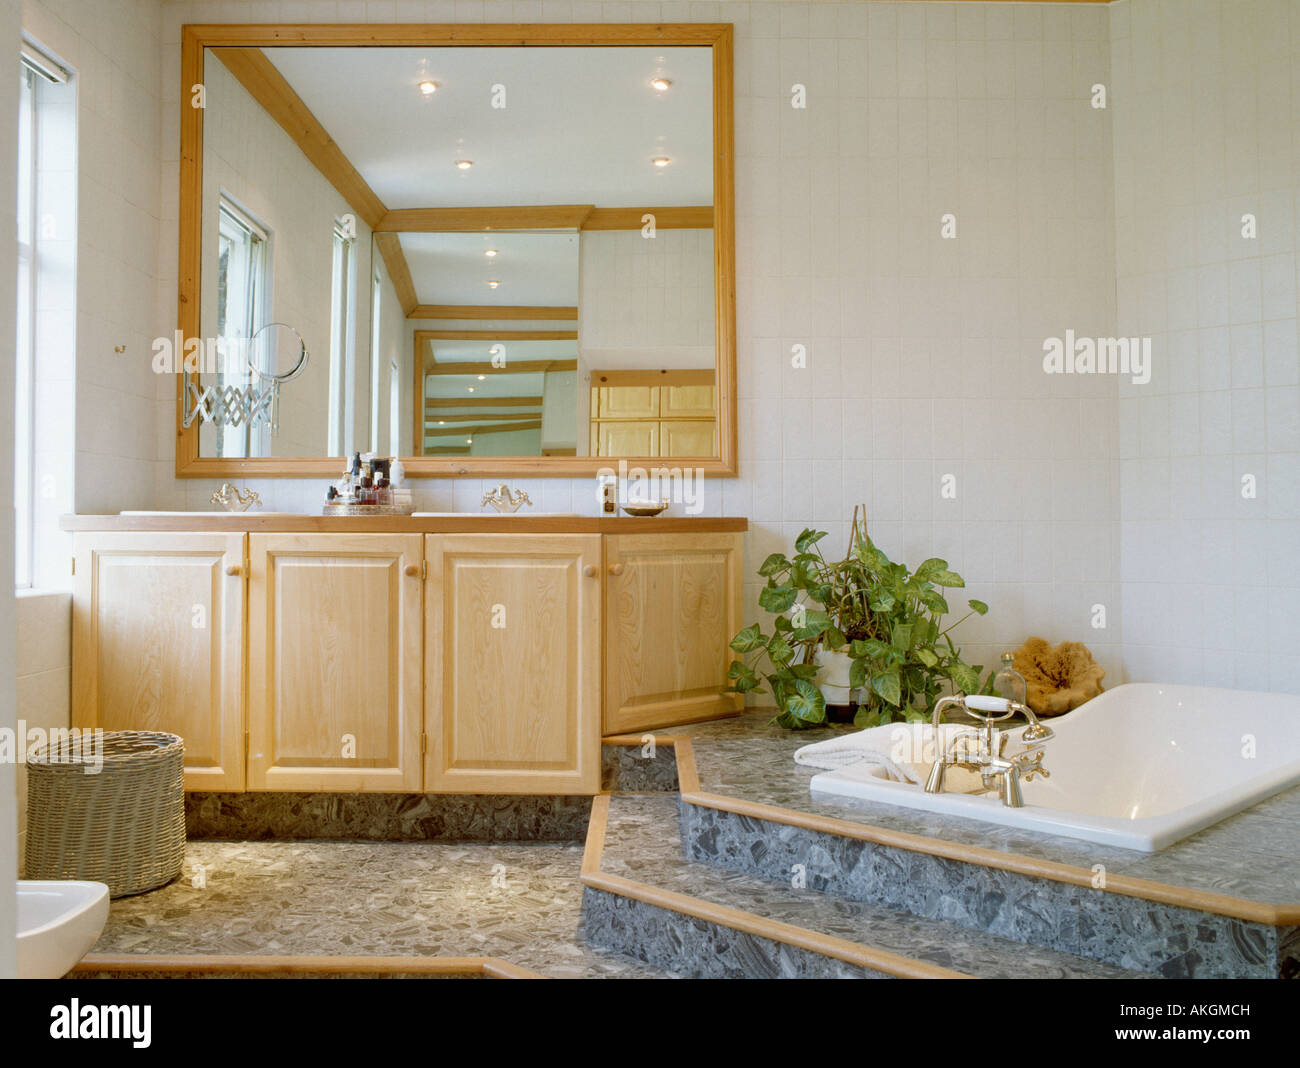 Large Mirror Above Pale Wood Vanity Unit In Bathroom With Marble Stock Photo Alamy